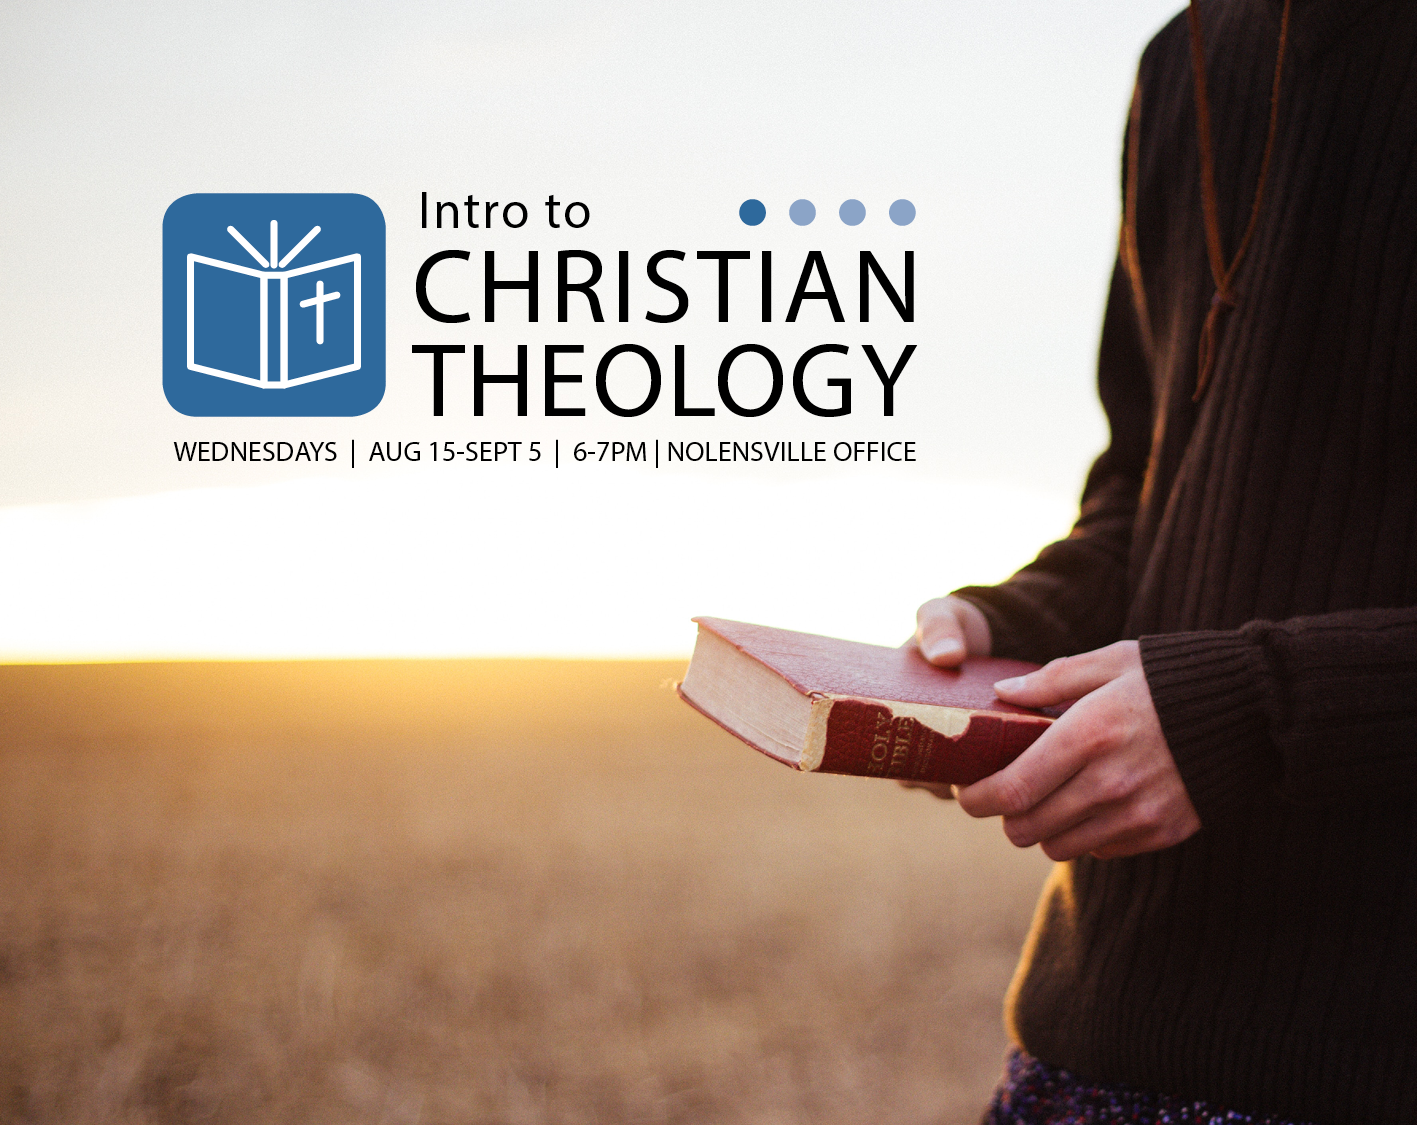 Intro to Christian Theology